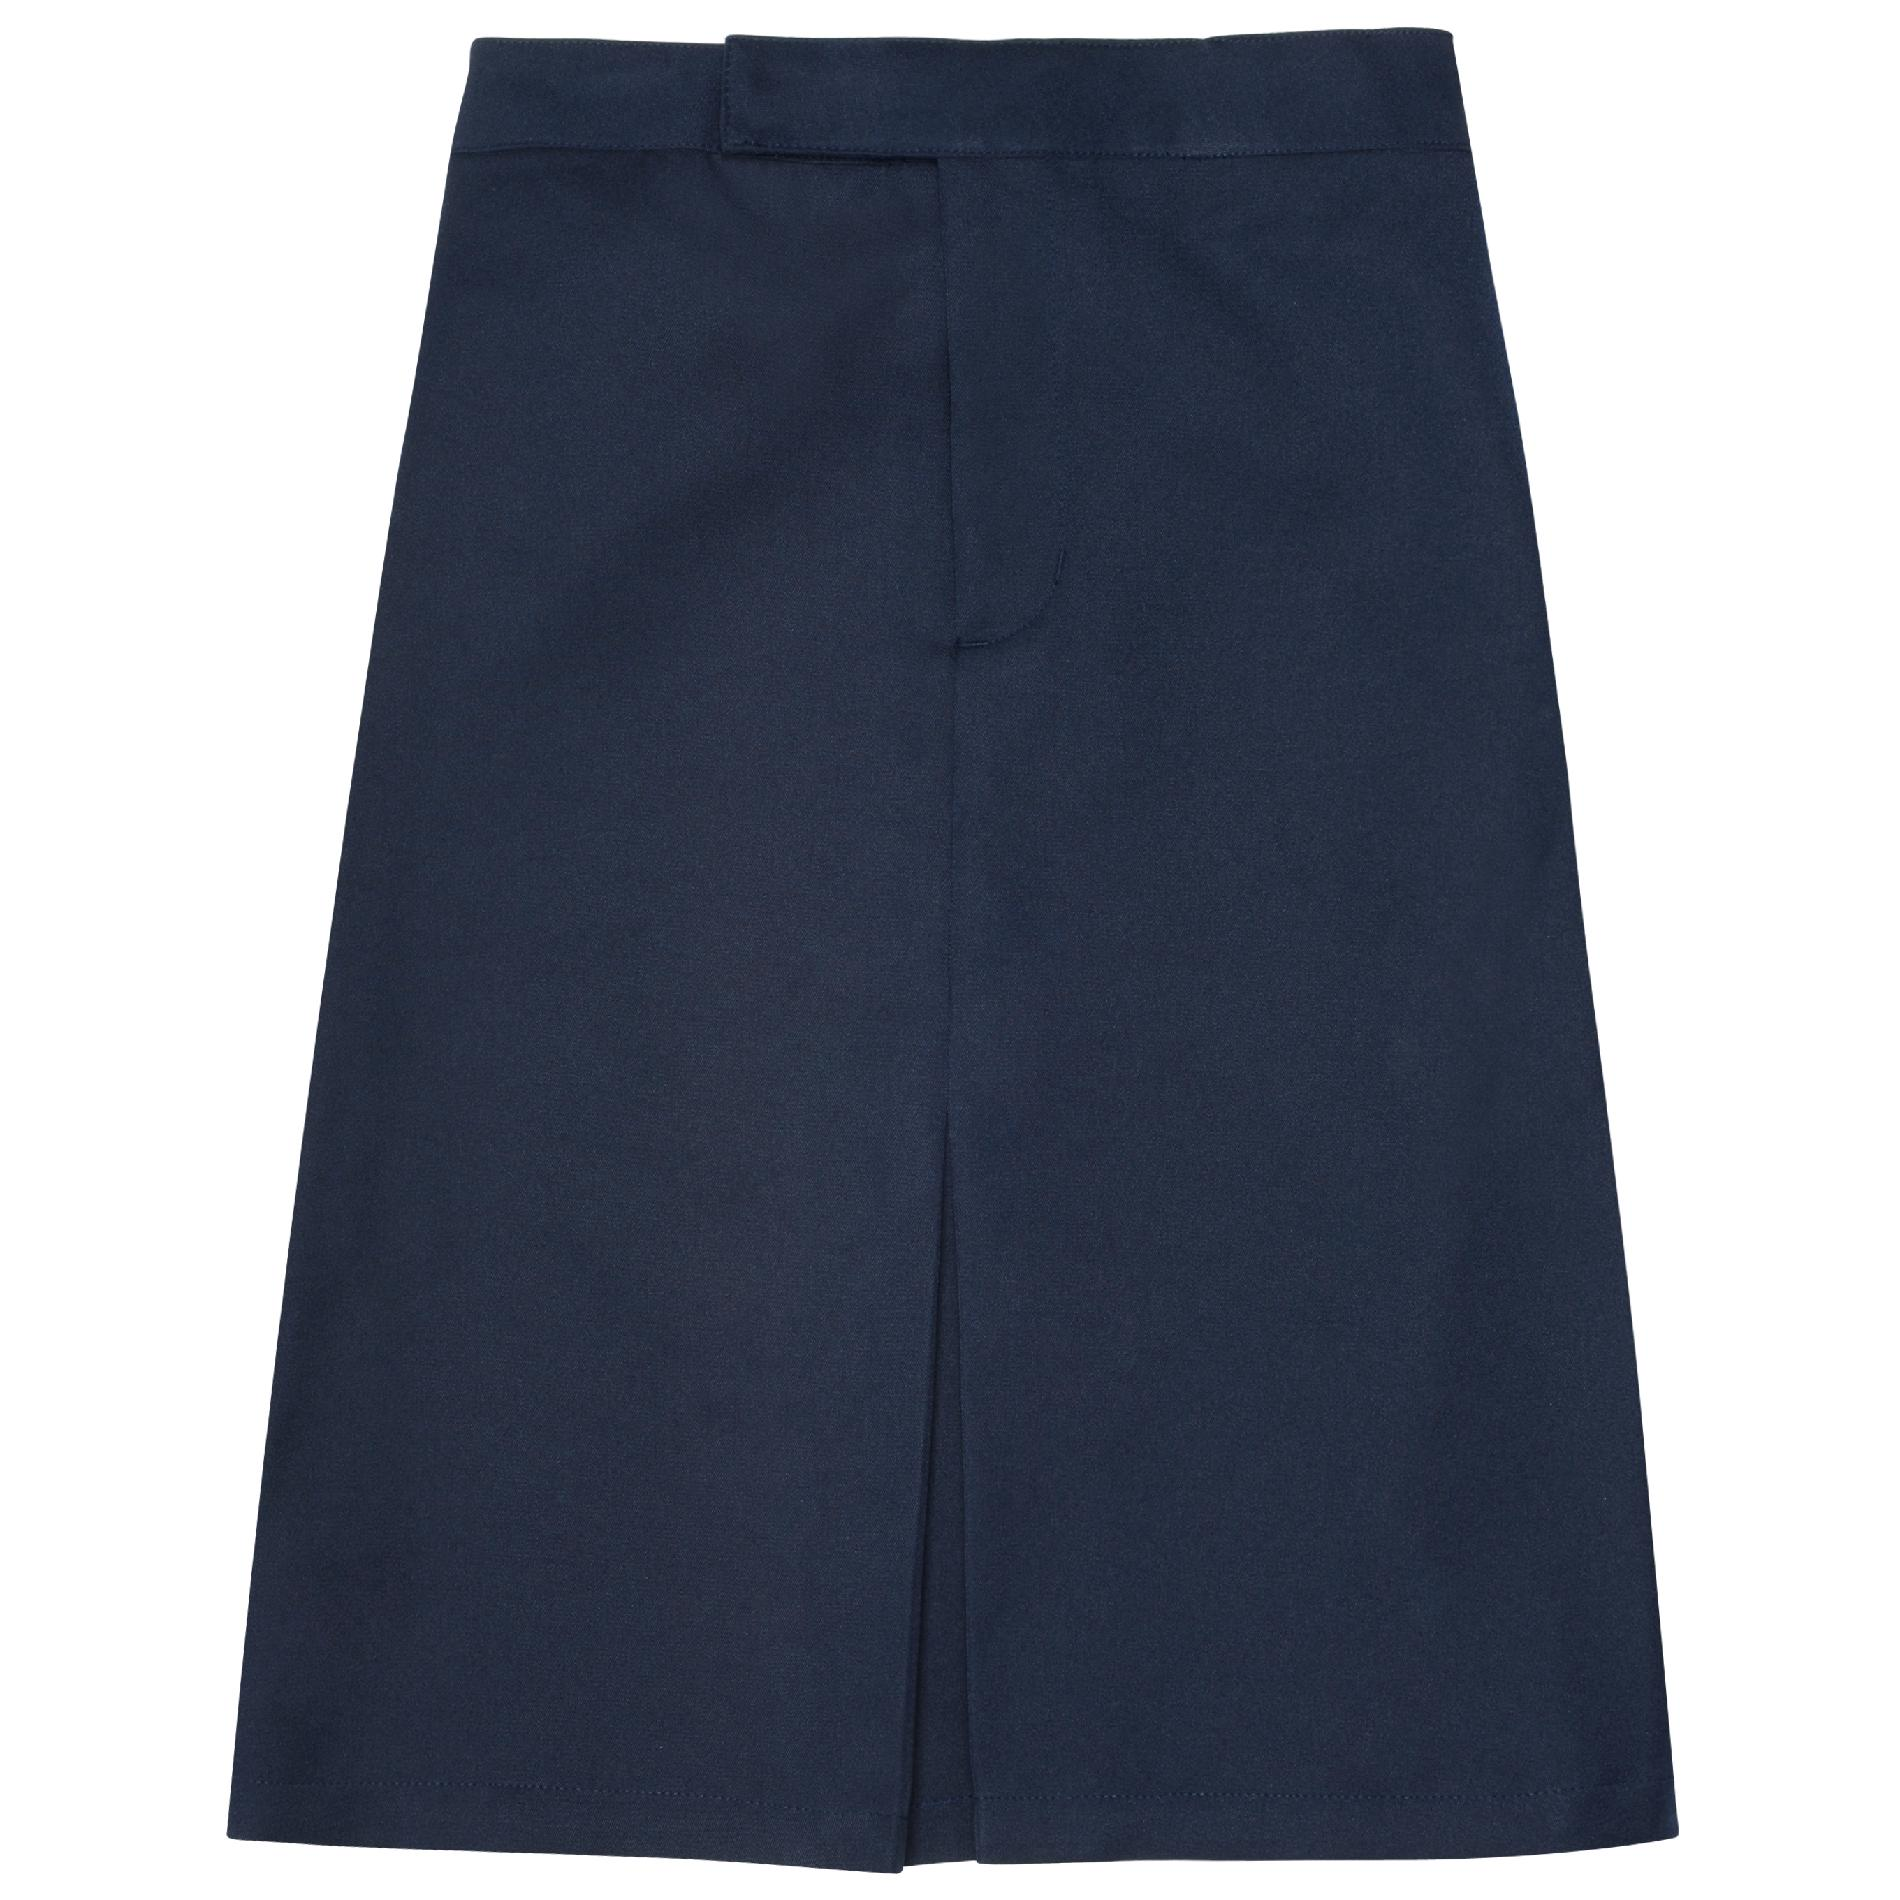 School Skirts Kmart At School By French Toast Kick Pleat Skirt Clothing